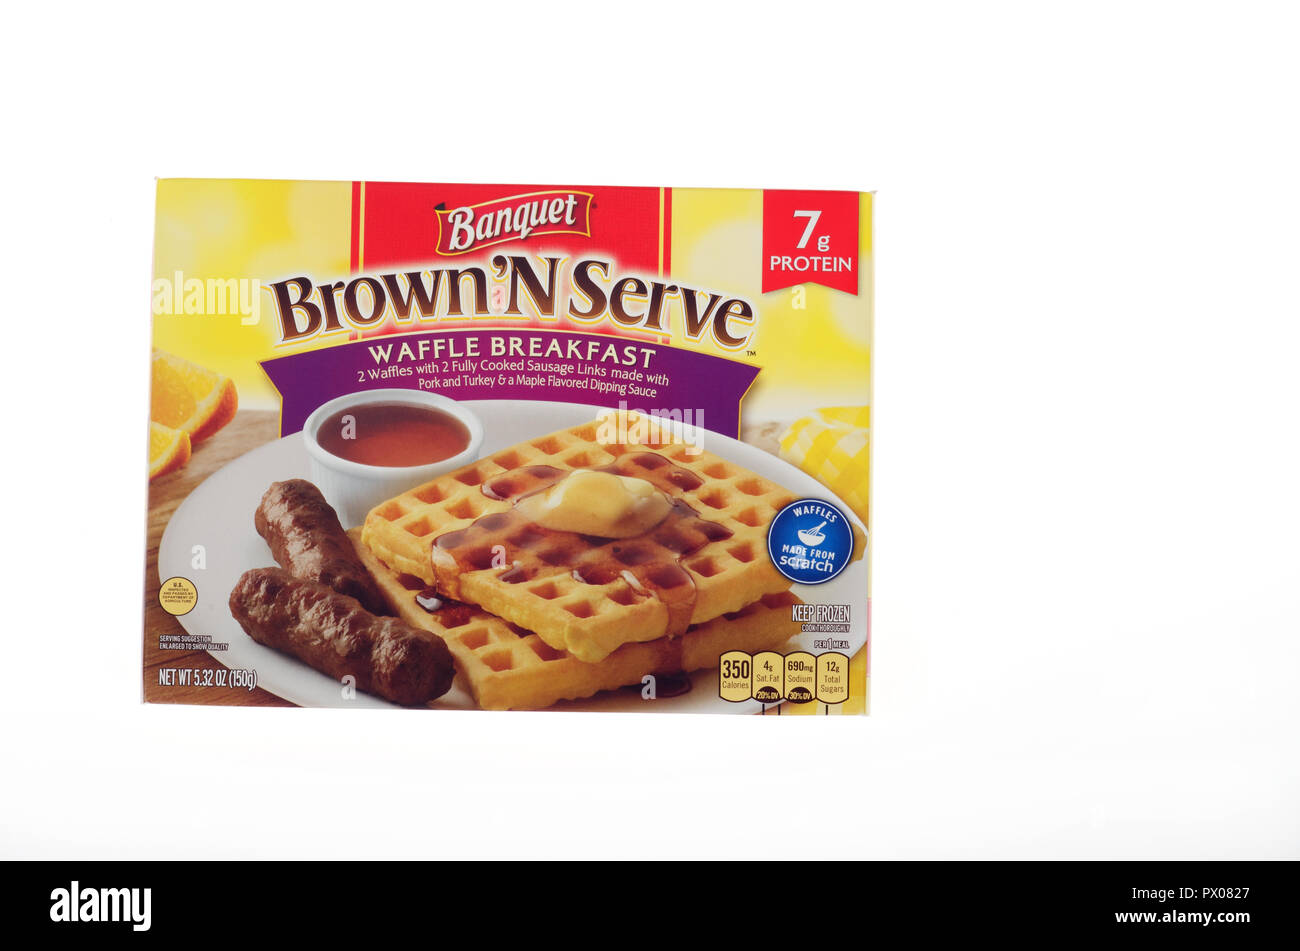 Box of Banquet Foods, part of ConAgra,  frozen breakfast with 2 waffles, 2 sausage links  & maple flavored syrup or dipping sauce meal - Stock Image